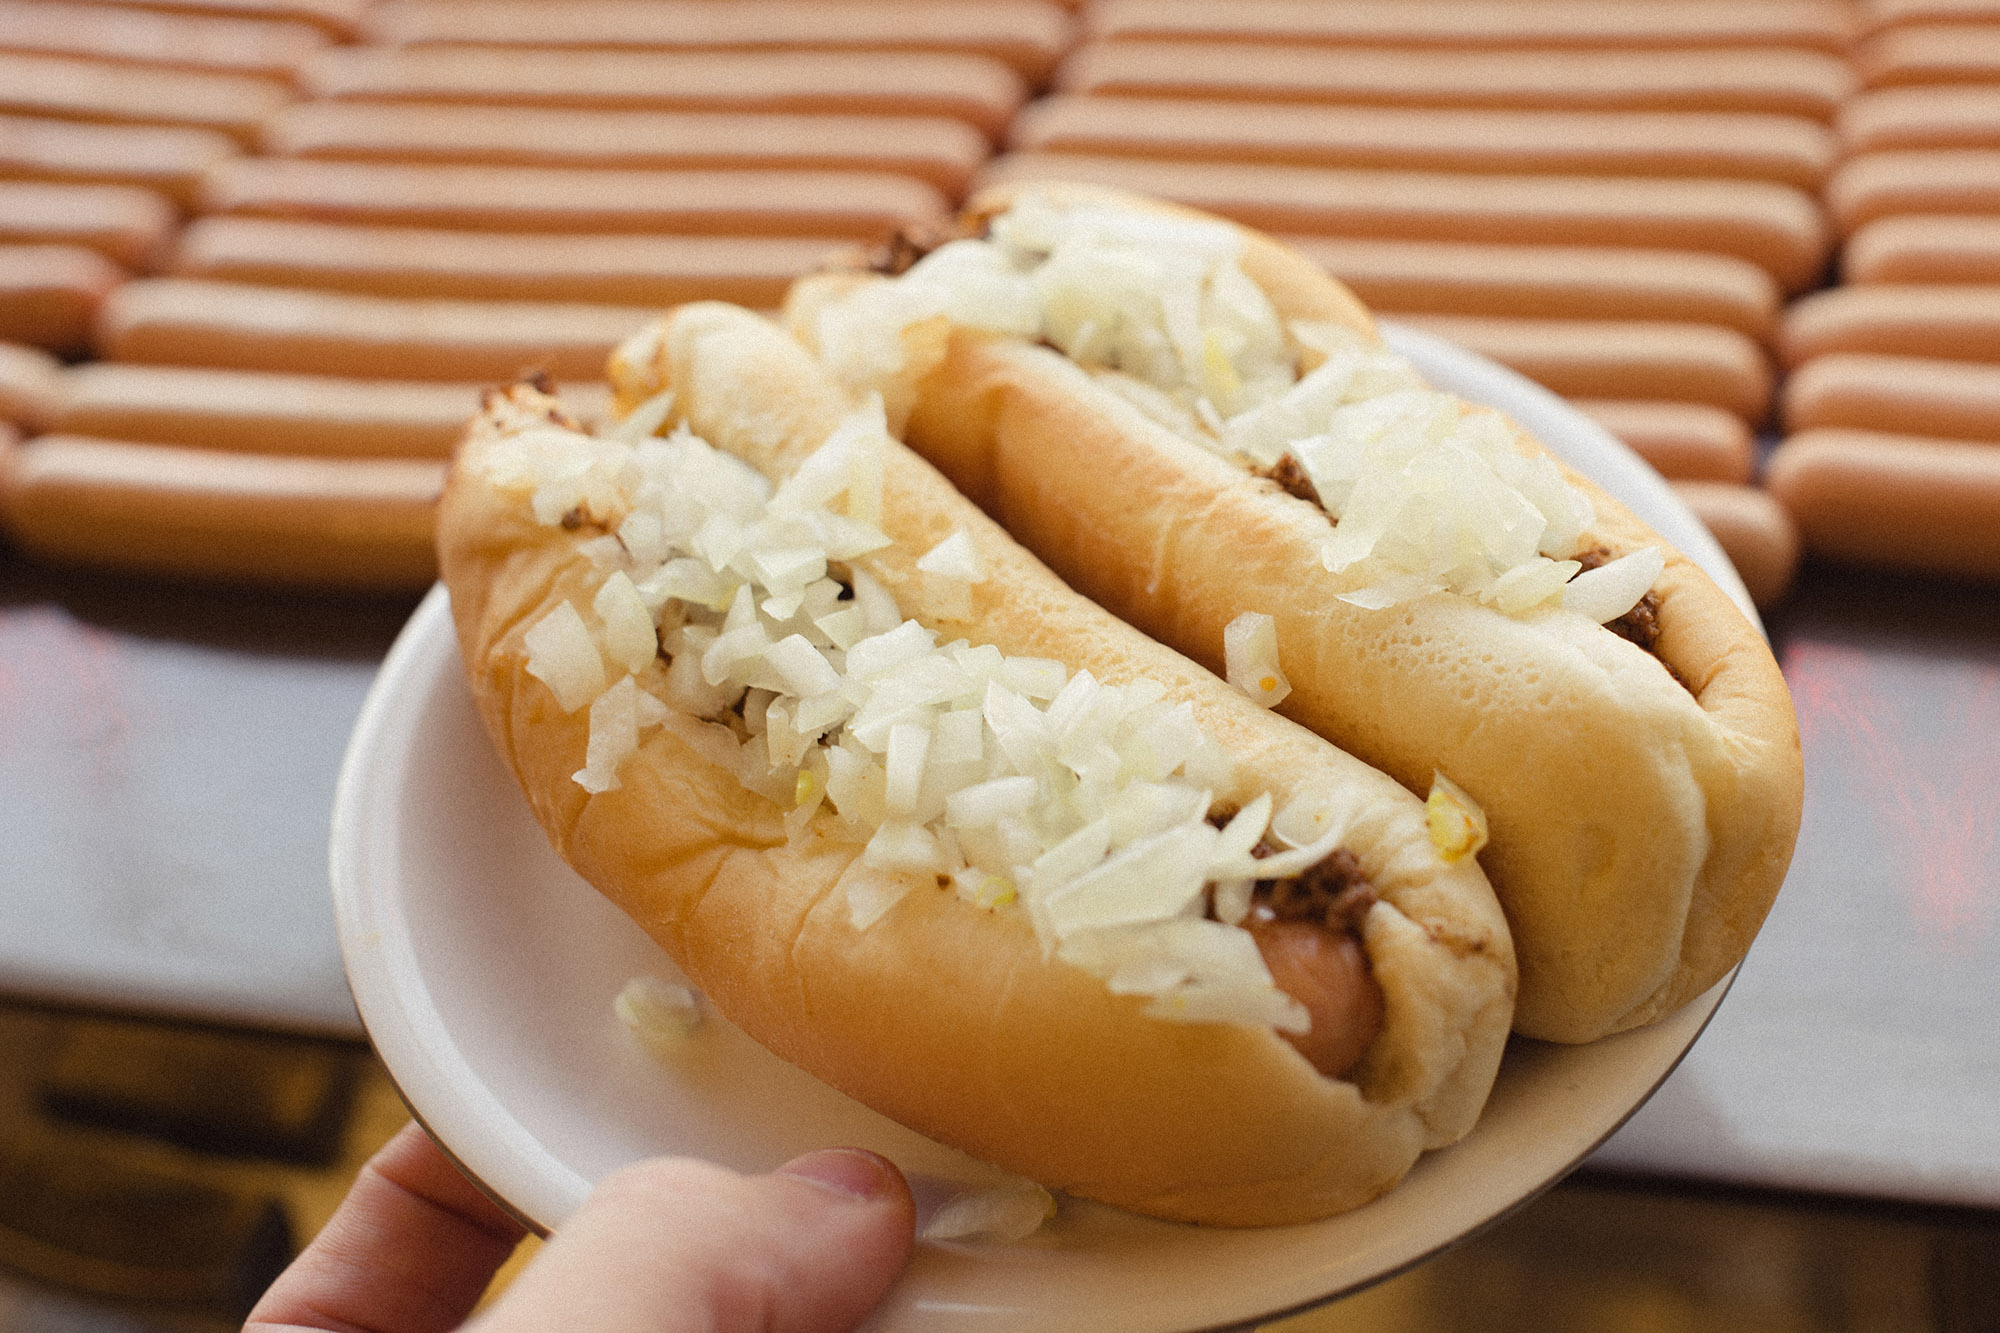 Fort Wayne's Famous Coney Island Wiener Stand in Indiana